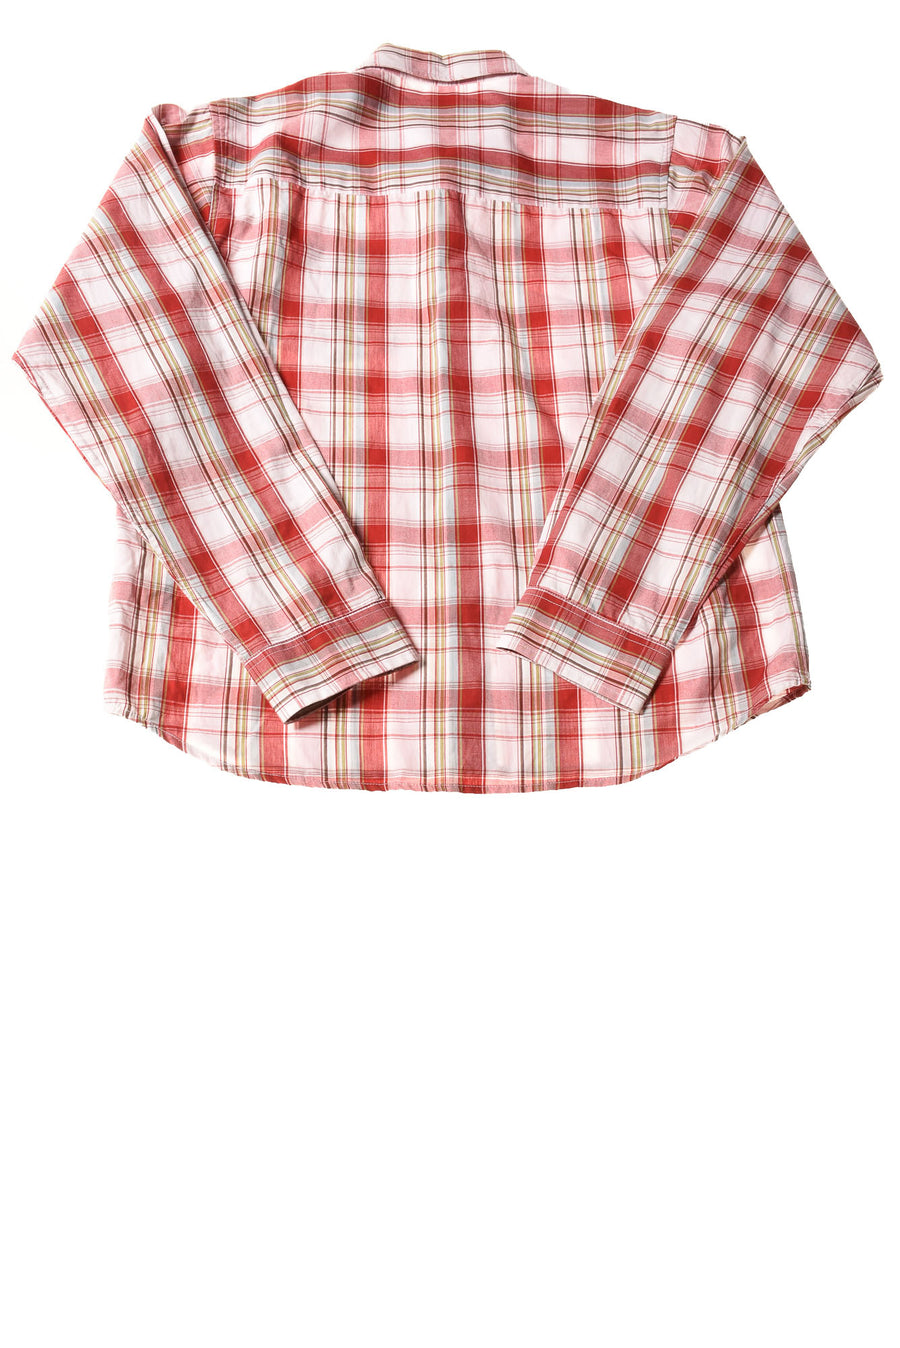 USED Urban Pipeline Boy's Shirt X-Large Spicey Red